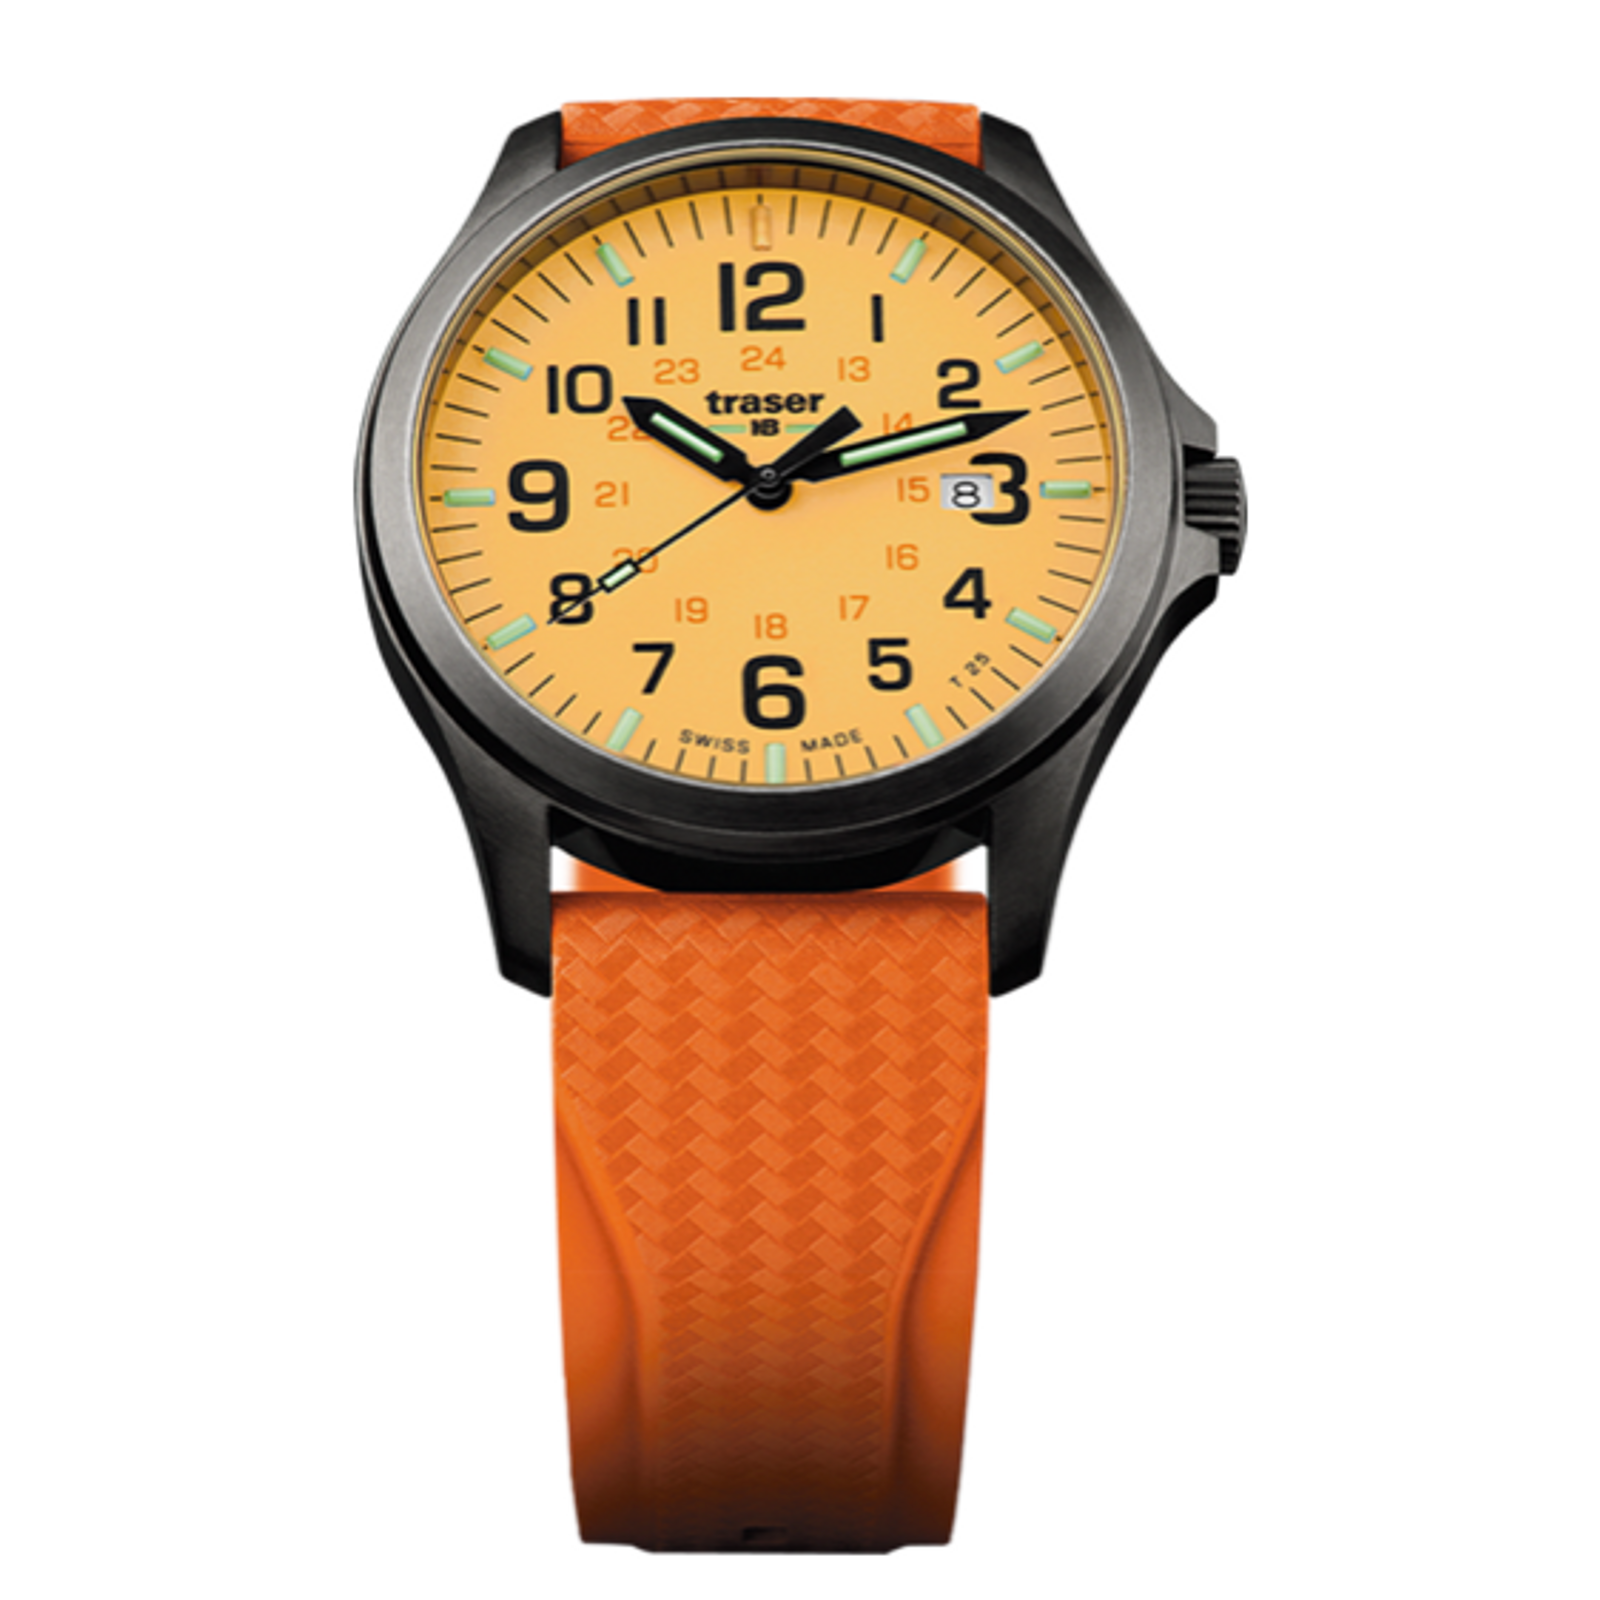 P67 Officer Pro GunMetal Orange